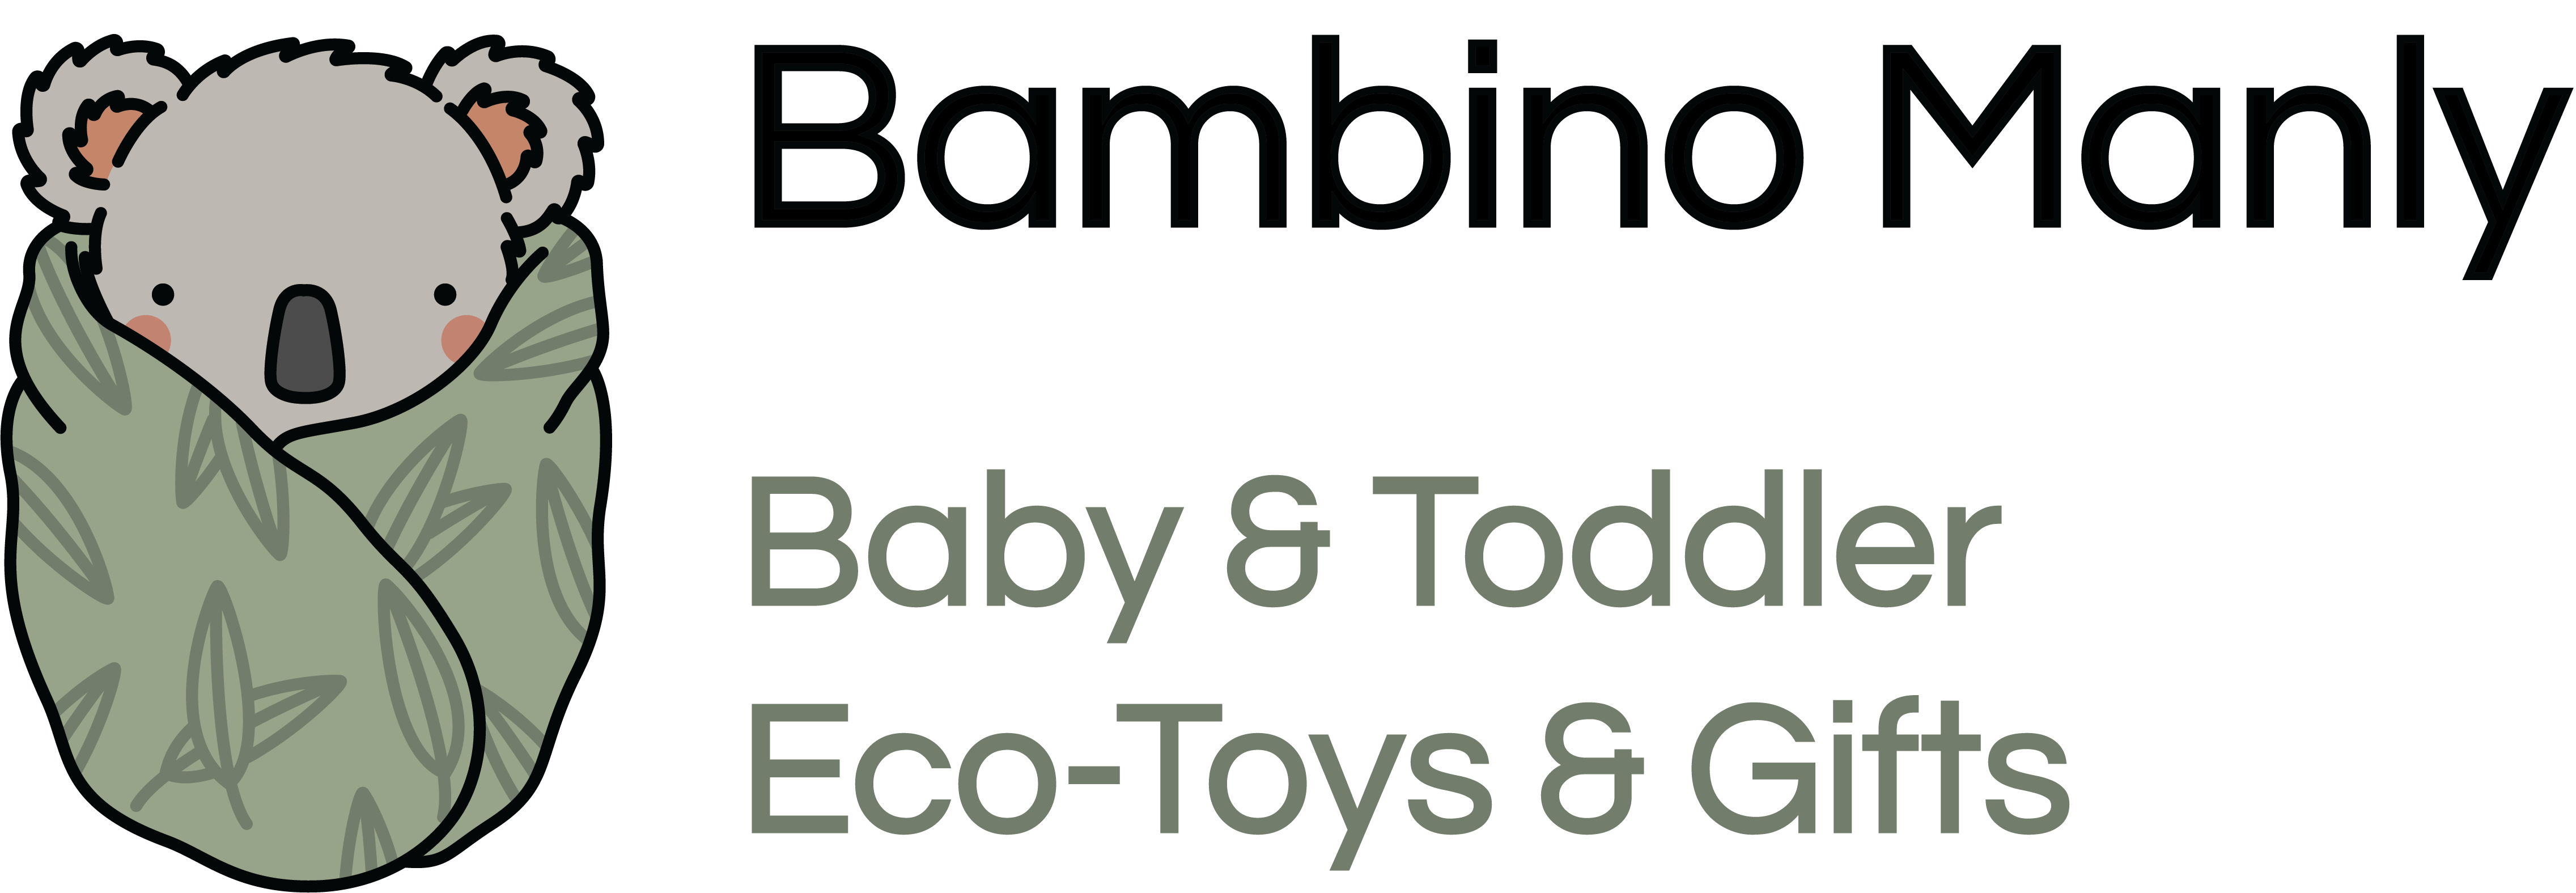 Bambino Manly: Eco-Toys for Little Ones